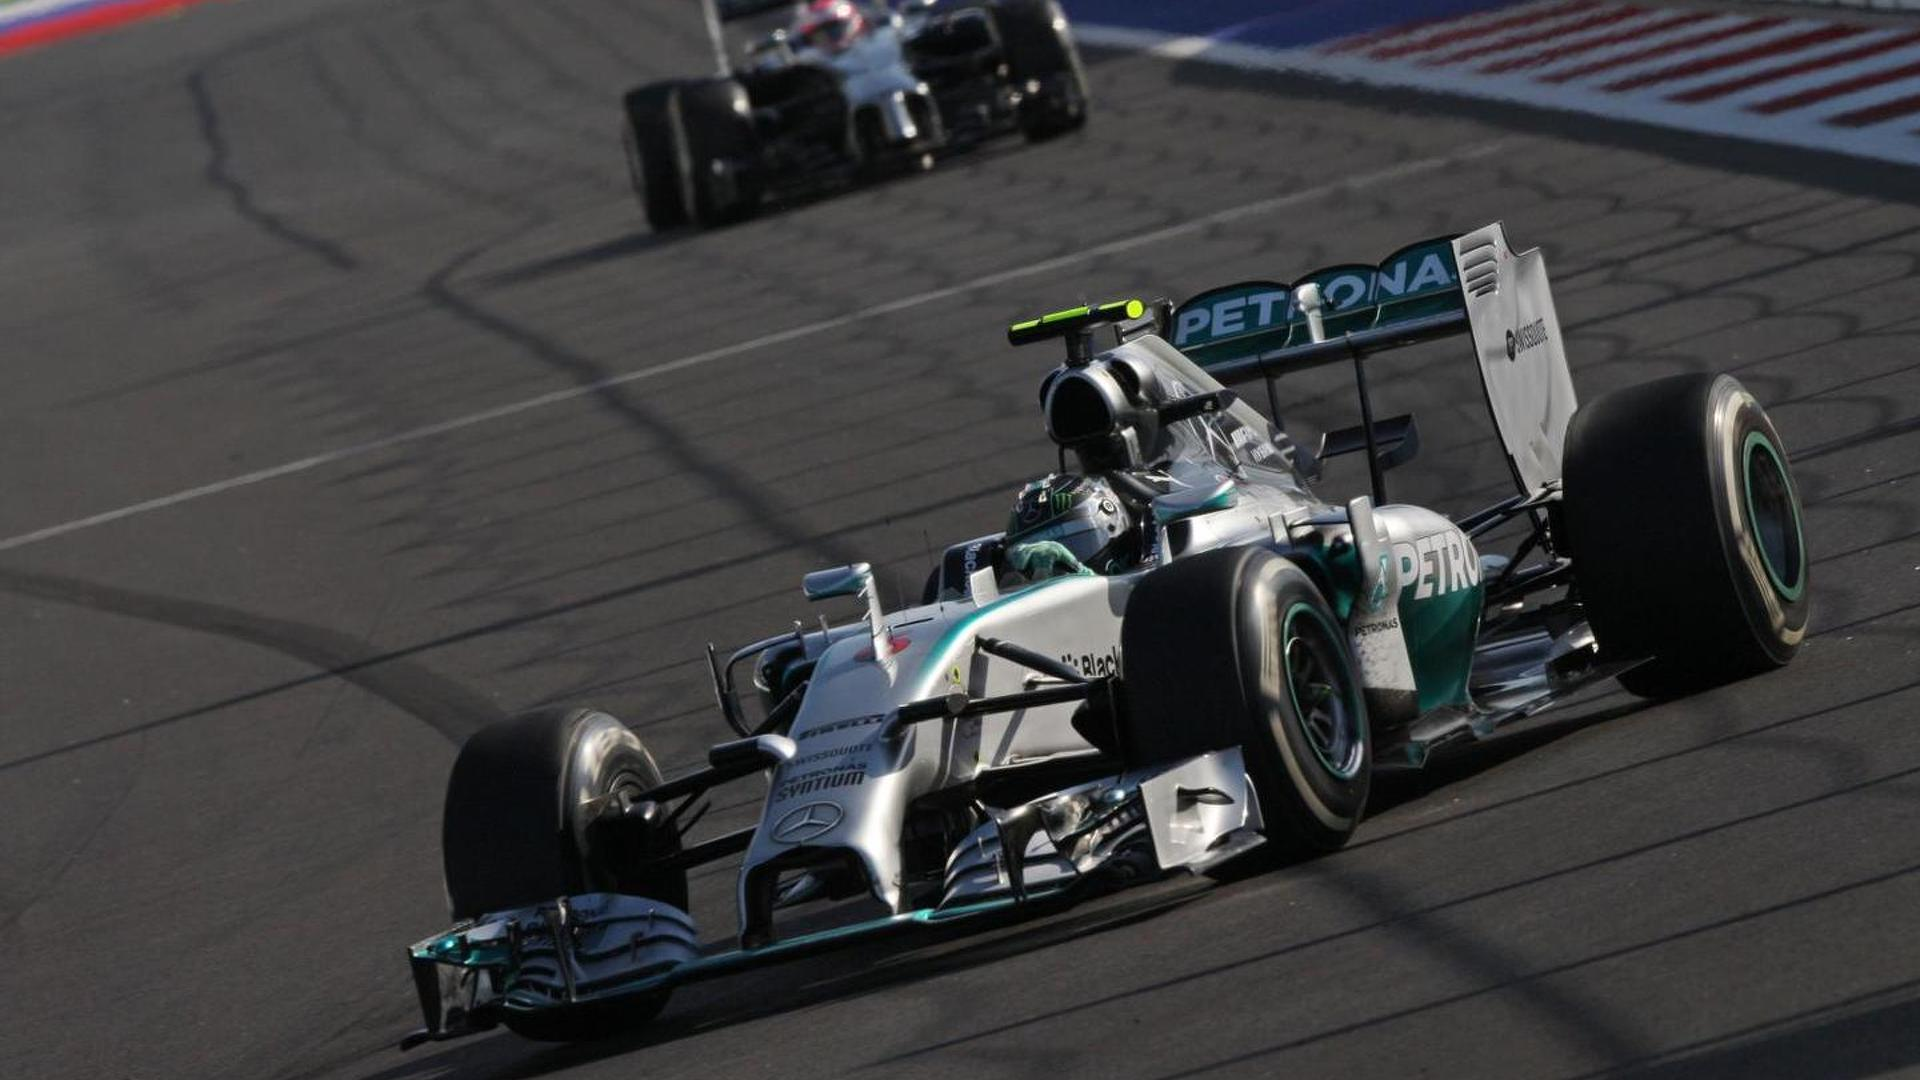 Rosberg appoints himself 'title hunter'